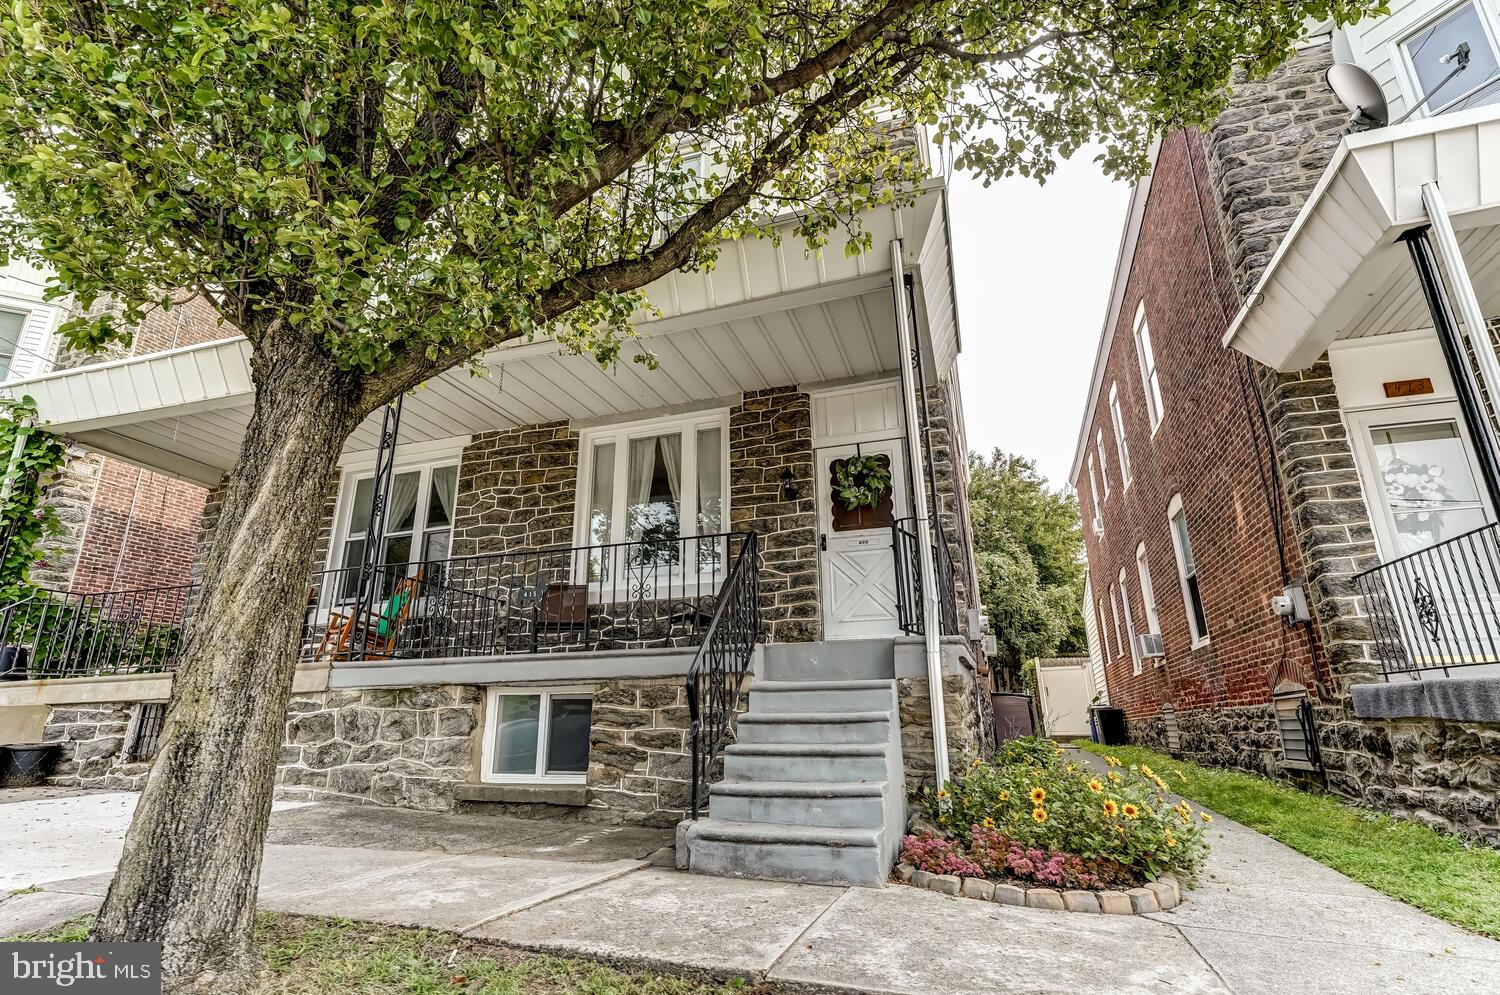 Buyer's mortgage fell through - their loss is your gain! Move-in ready stone twin in the heart of highly sought-after Manayunk/Roxborough!  The spacious first floor includes a livingroom, dining room and kitchen and has new hardwood plank flooring and is freshly painted. A good-sized laundry room/mudroom and half bath, as well as both front and back staircases round out the first floor. Upstairs you will find 3 generously sized and freshly painted bedrooms, all with roomy closets and also with new hardwood plank flooring. A full bath completes the 2nd second floor. But wait, that's not all! The huge and tidy basement has high ceilings and is just waiting for your workshop, storage or even to be finished for additional living/entertaining space. The fenced in backyard with concrete patio and front porch provide outdoor space and extra green space across the street gives the block an open and airy feel. Public transportation, ample parking and Daisy & La Noce Parks are all walkable, as is the Wissahickon/Fairmount park system as well as all Manayunk has to offer. Schedule your showing today!